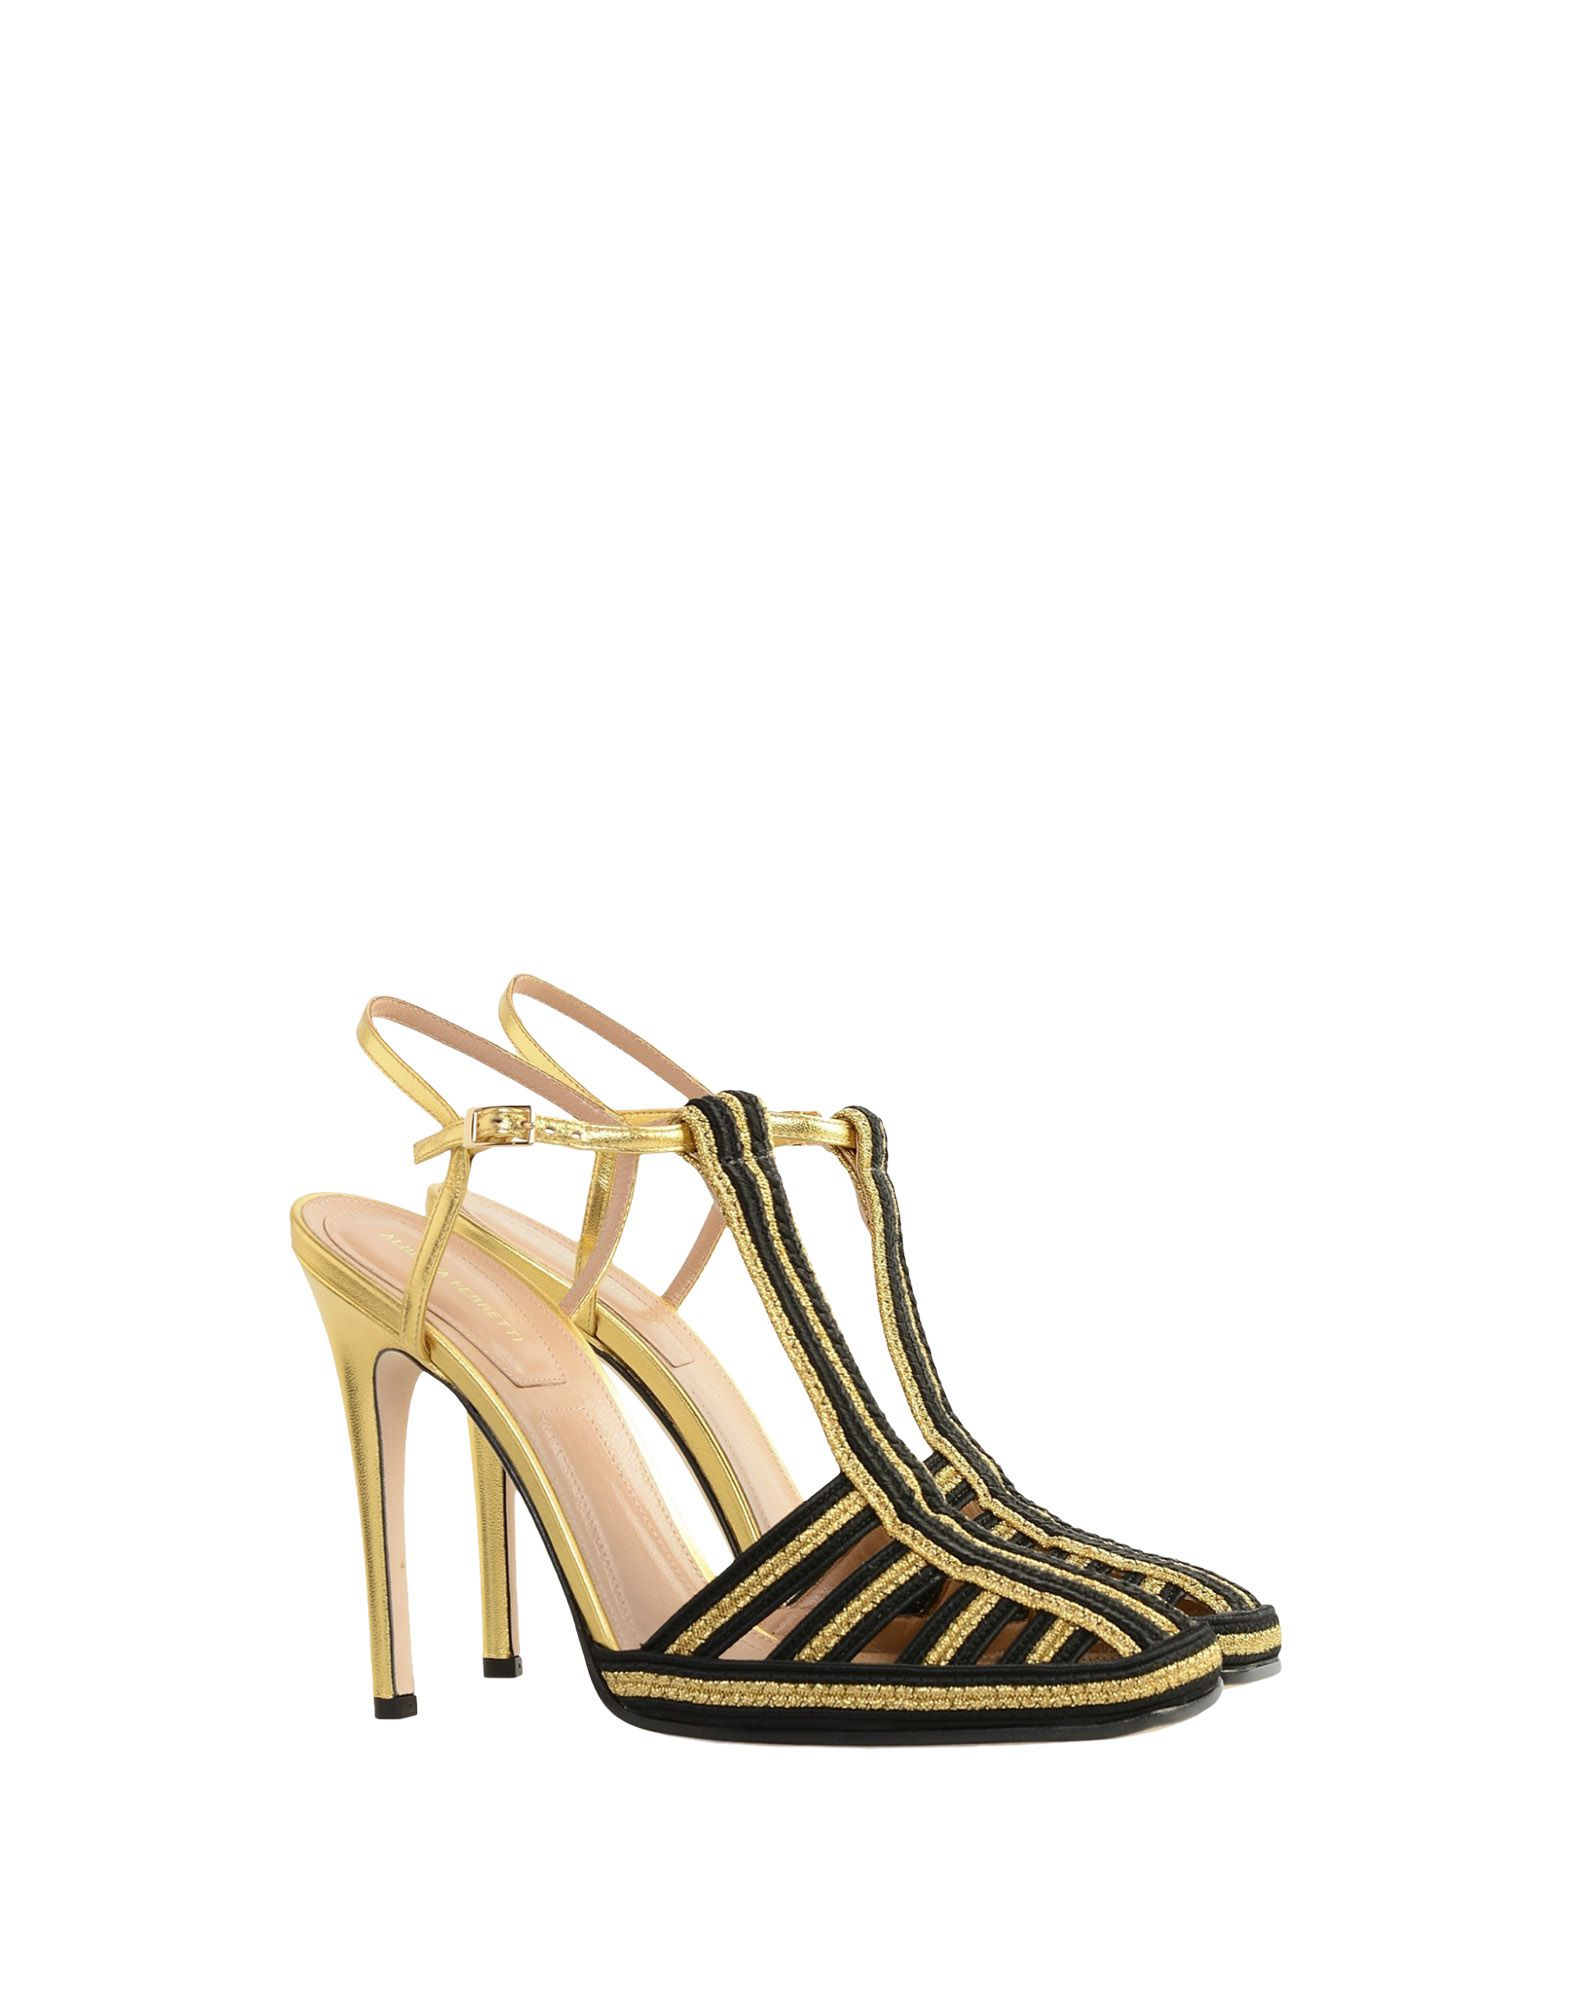 Alberta Ferretti Ferretti Sandals - Women Alberta Ferretti Ferretti Sandals online on  United Kingdom - 11435106DA 2f7d20